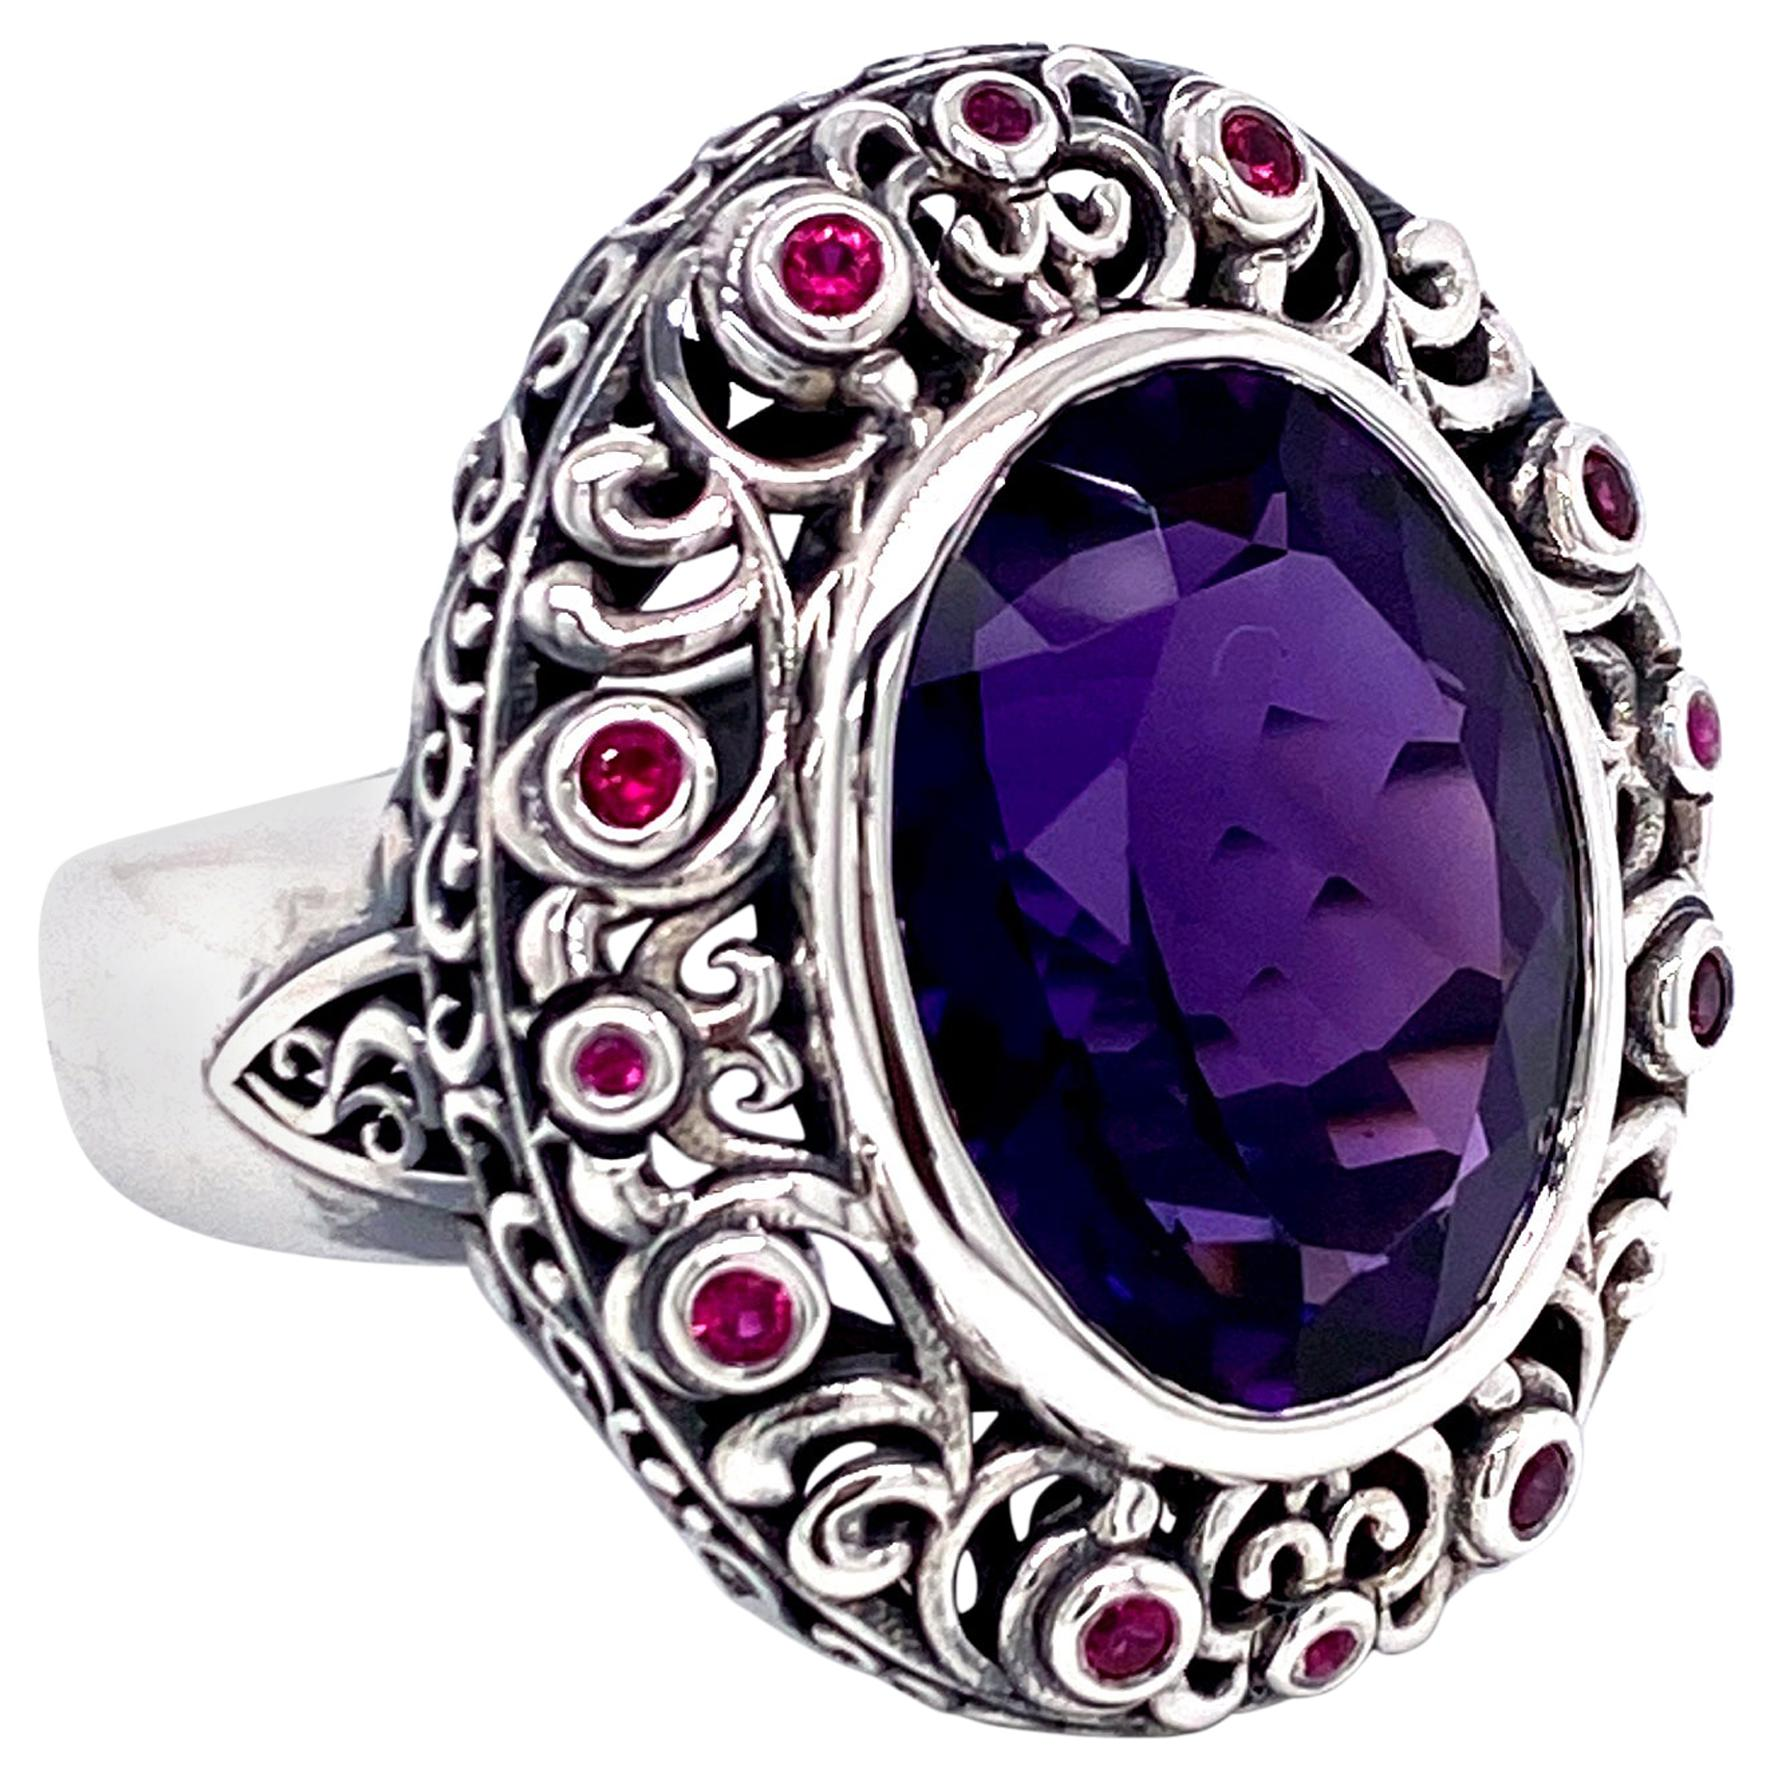 Oxidized Sterling Silver 8.75 Carat Amethyst and Ruby Ring